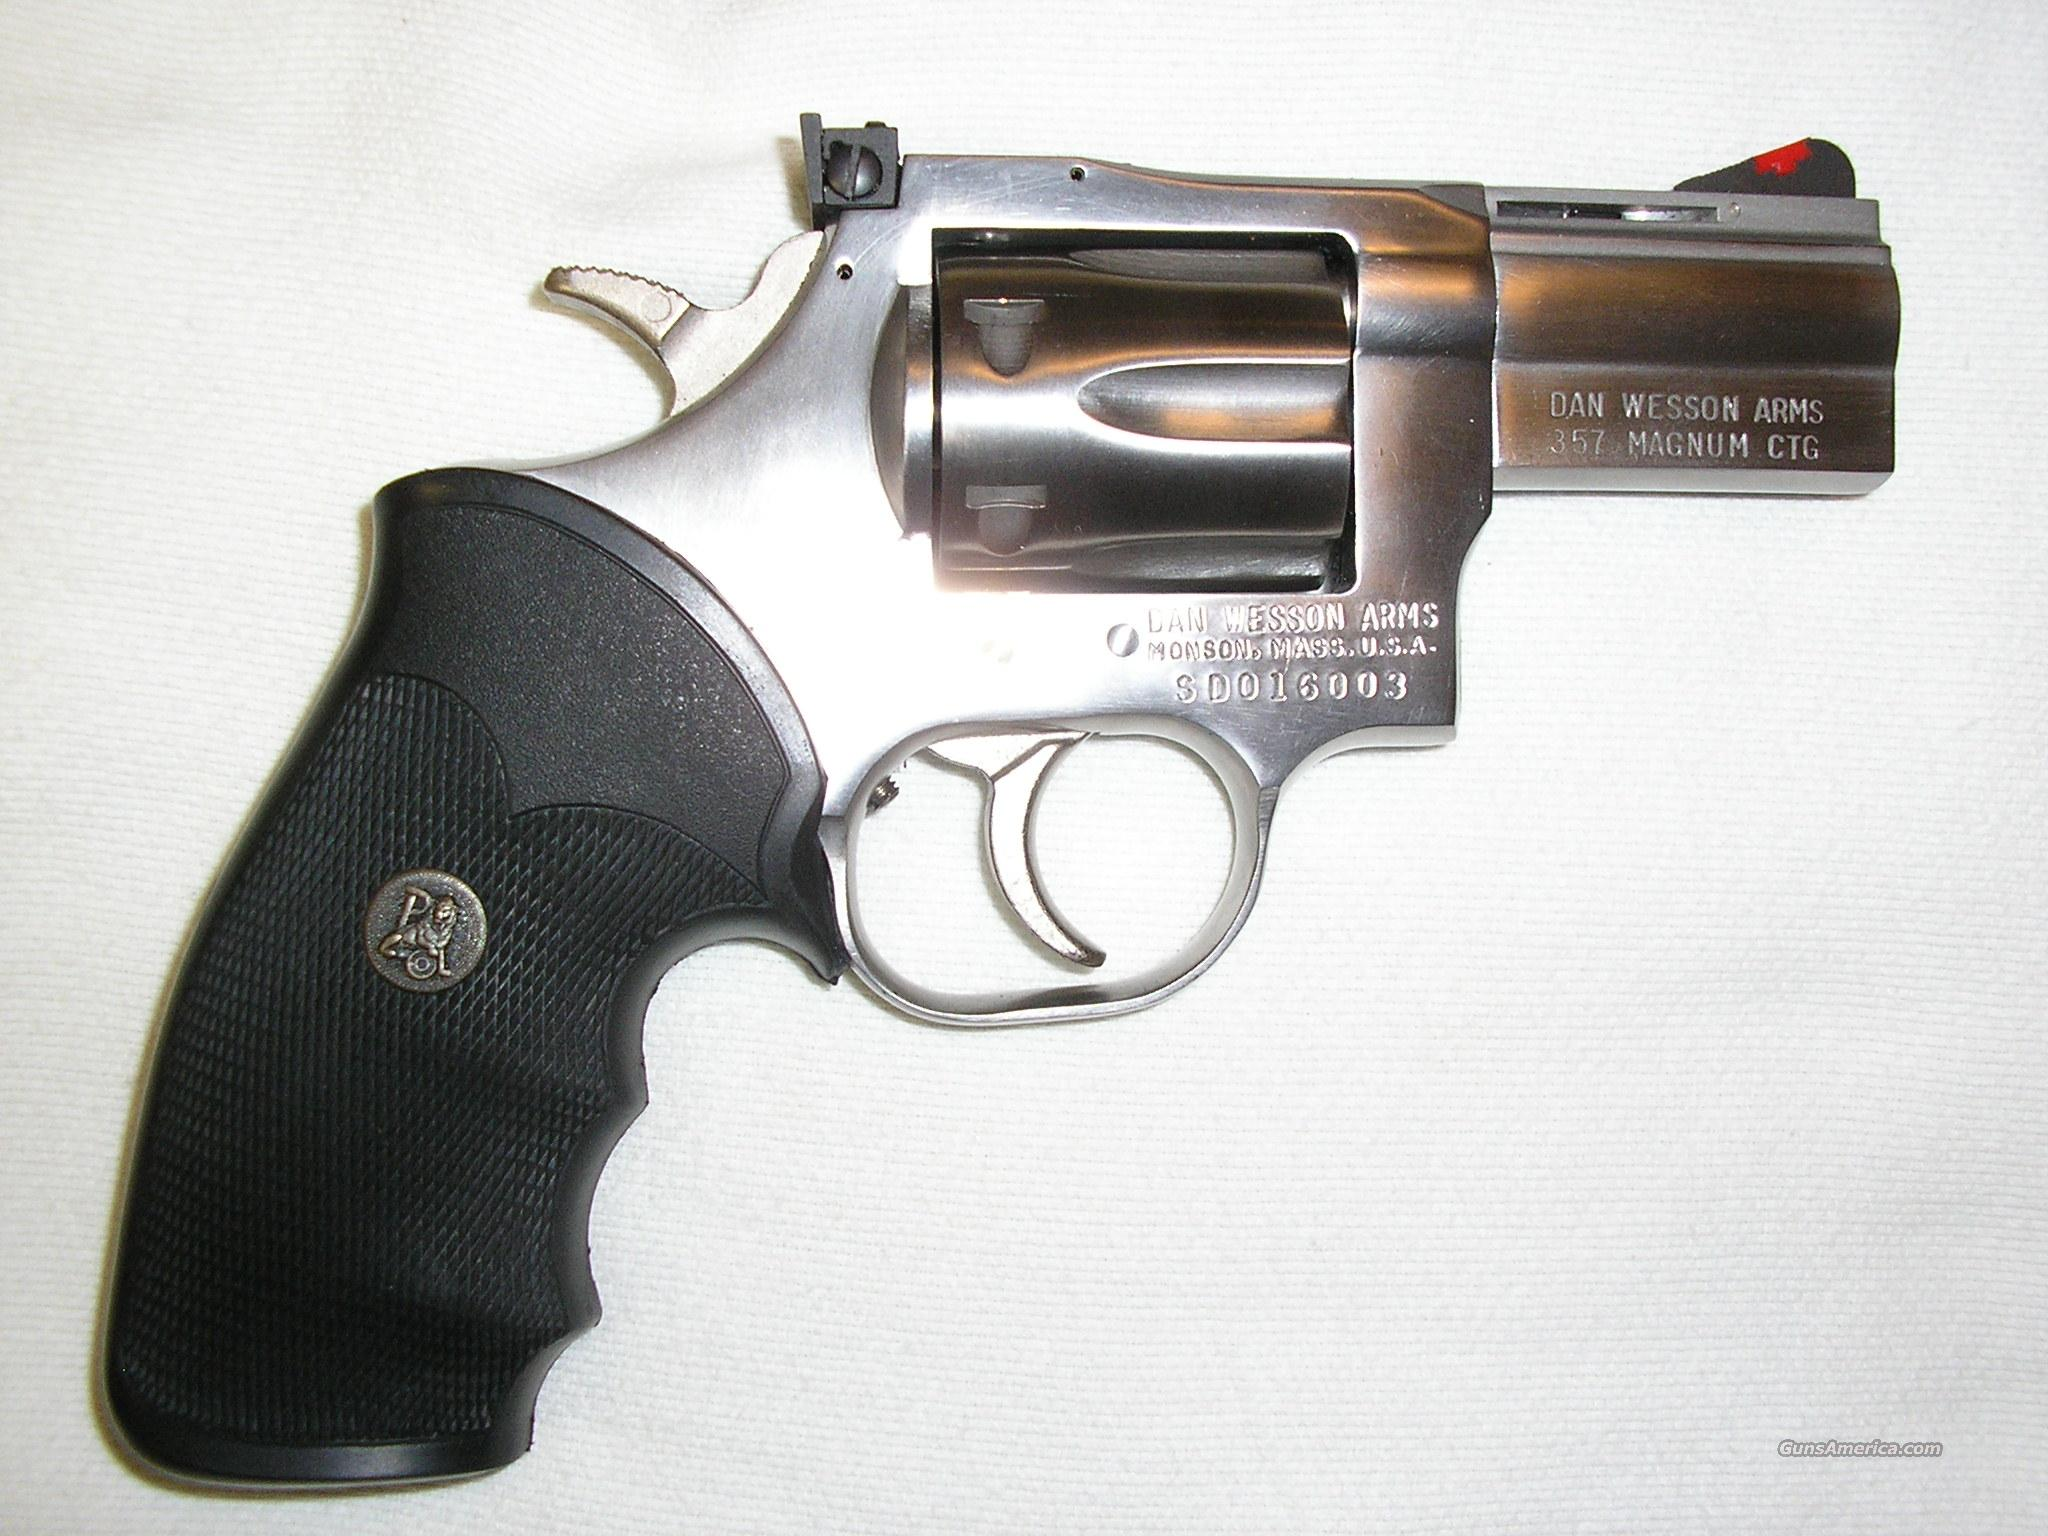 New Dan Wesson SS .357 Magnum Revolver Action  Guns > Pistols > Dan Wesson Pistols/Revolvers > Revolvers